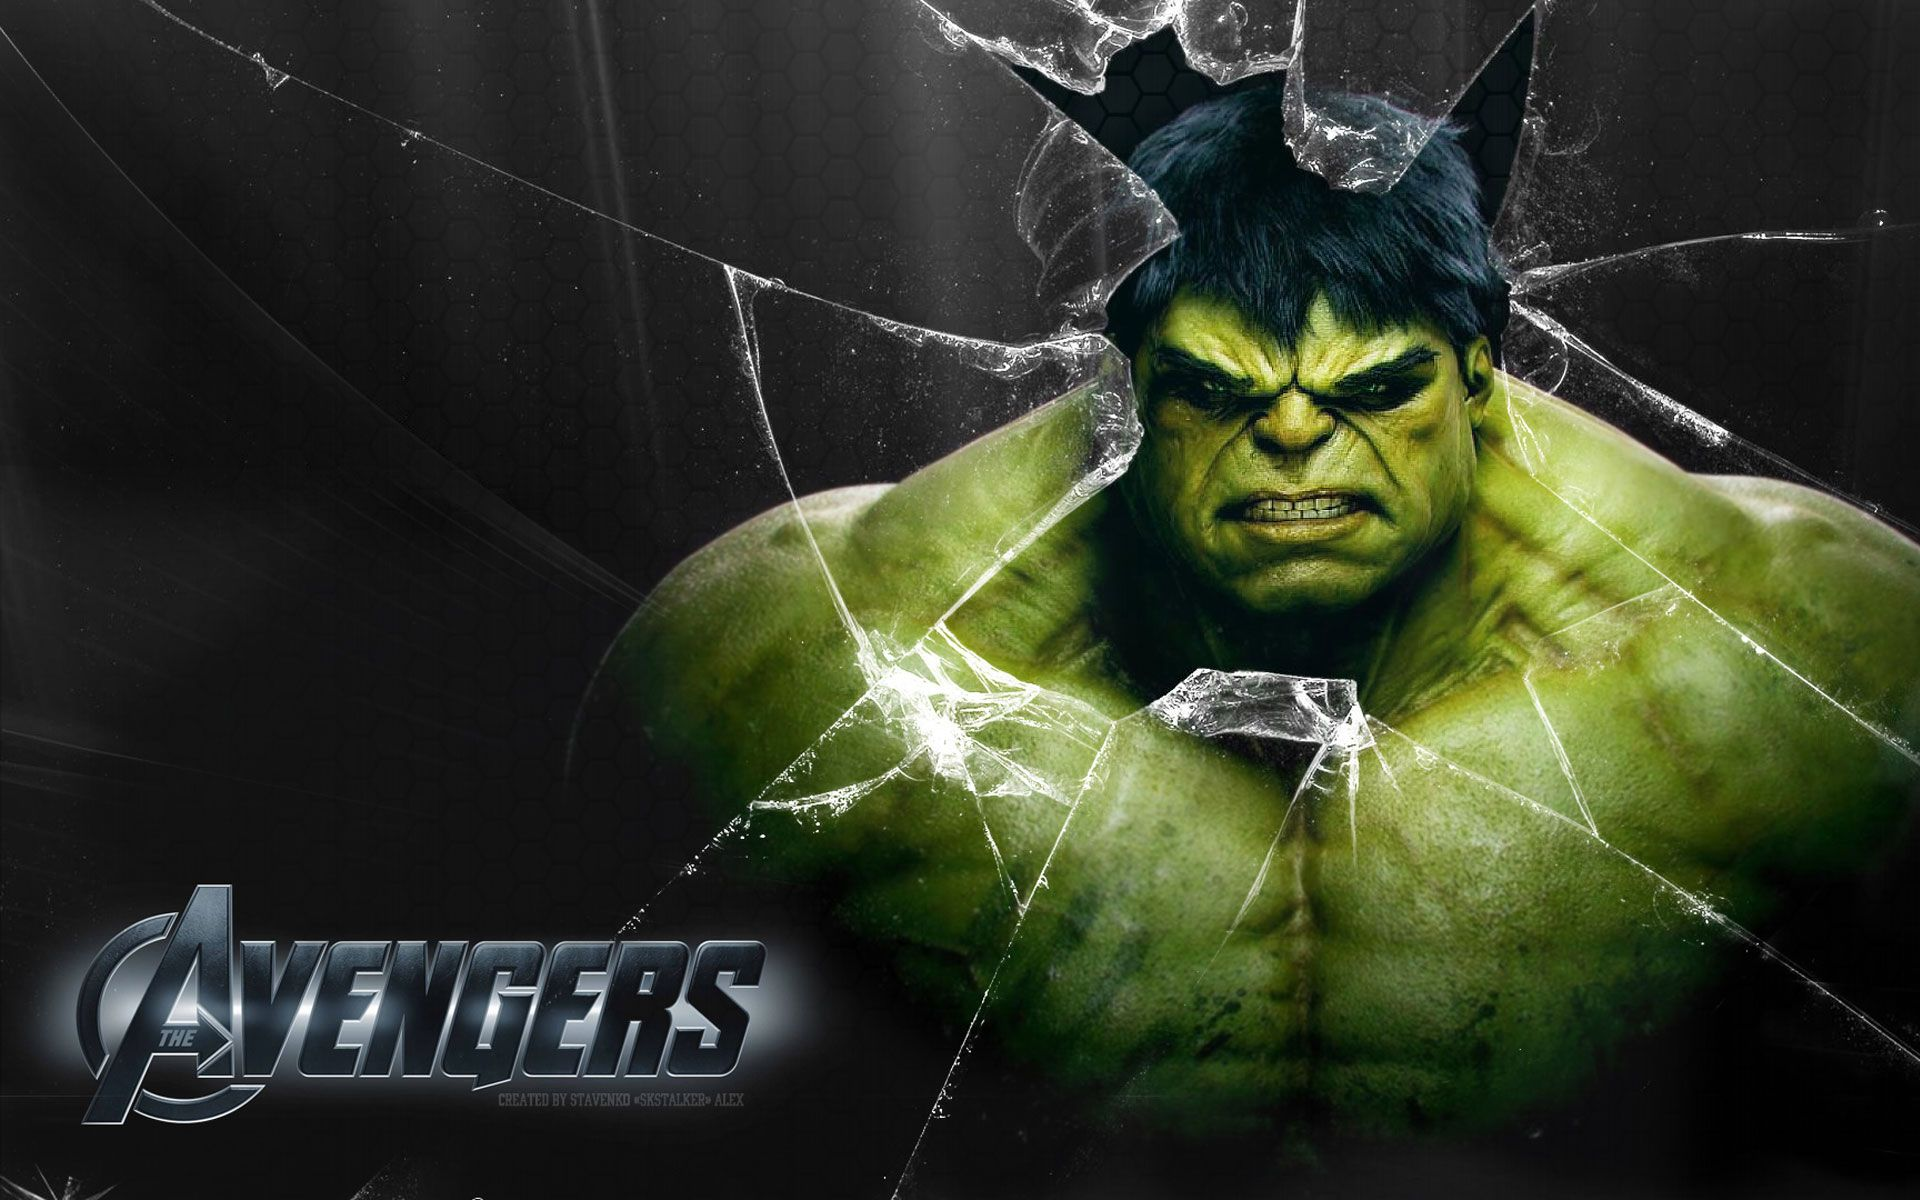 Free Download Wallpaper Avenger Hulk Character Hd Claudia